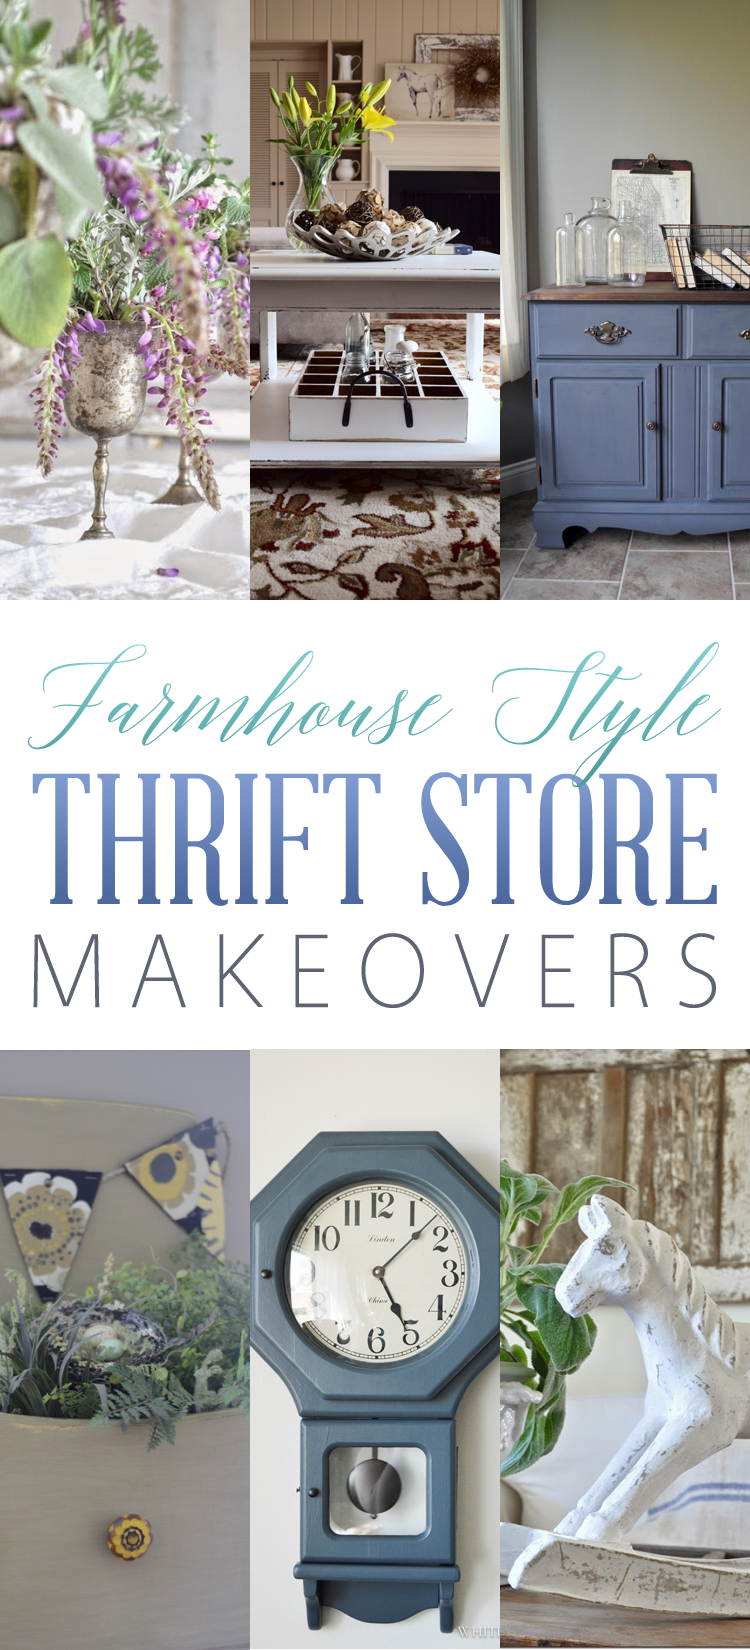 Farmhouse Style Thrift Store Makeovers